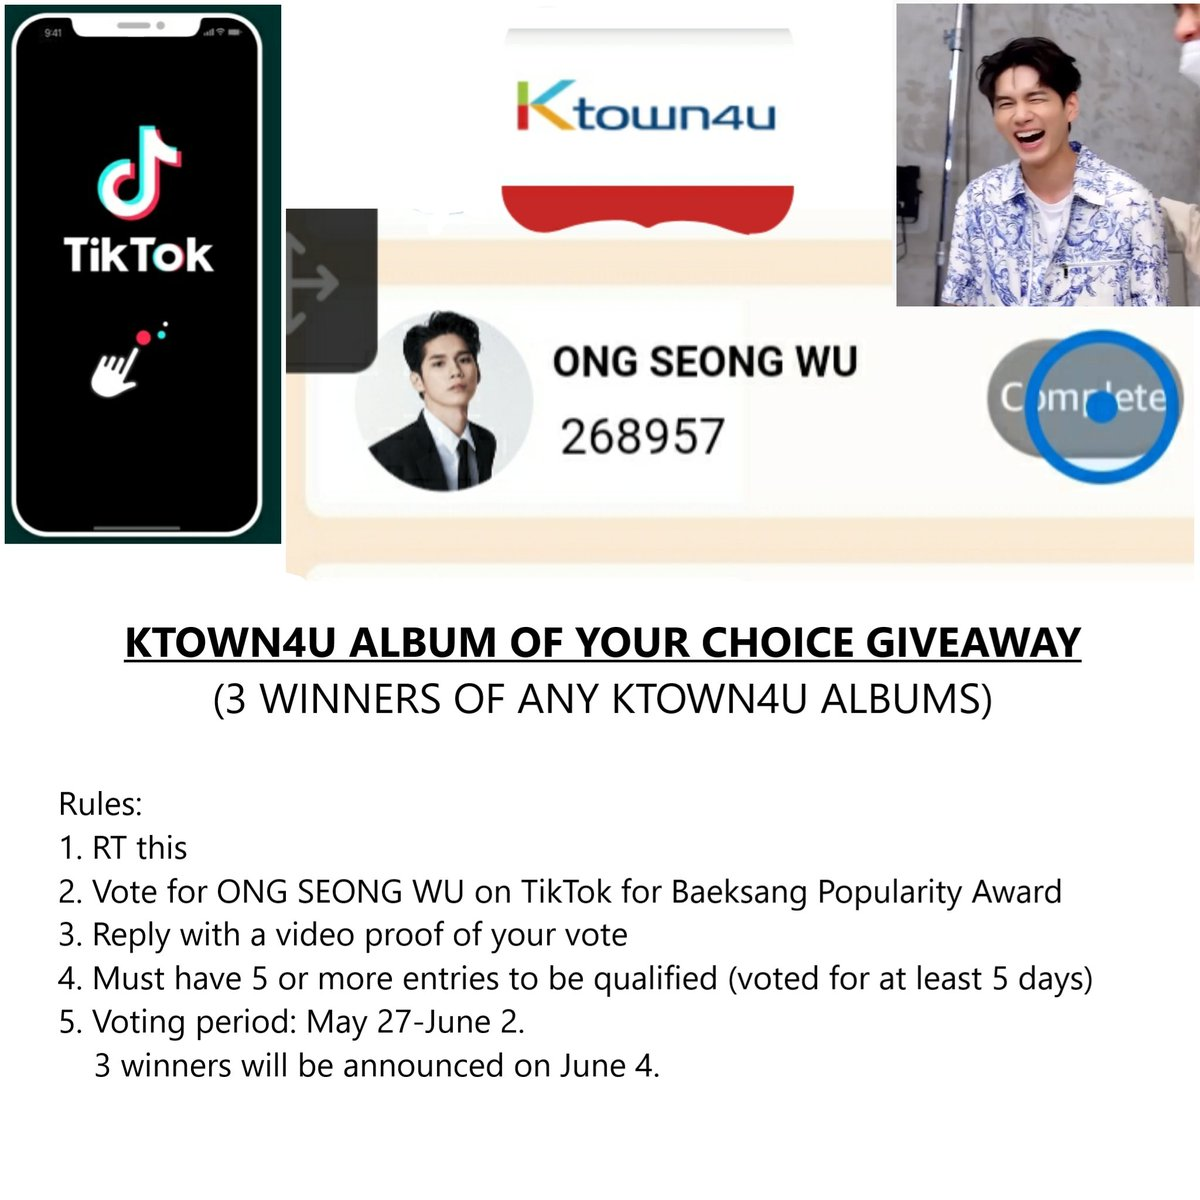 KTOWN4U ALBUM OF YOUR CHOICE GIVEAWAY 3 WINNERS  ANY FANDOM FROM ANY LOCATION ARE WELCOME TO JOIN  RT & VOTE FOR ONG SEONGWU ON TIKTOK TO WIN!  App download: ▪︎ Android https://play.google.com/store/apps/details?id=com.ss.android.ugc.trill… ▪︎ IOS https://apps.apple.com/kr/app/tiktok-%ED%8B%B1%ED%86%A1/id1235601864…  Rules (see pic) Tutorials (see below) #kpop #GApic.twitter.com/lF1VQNHSFx